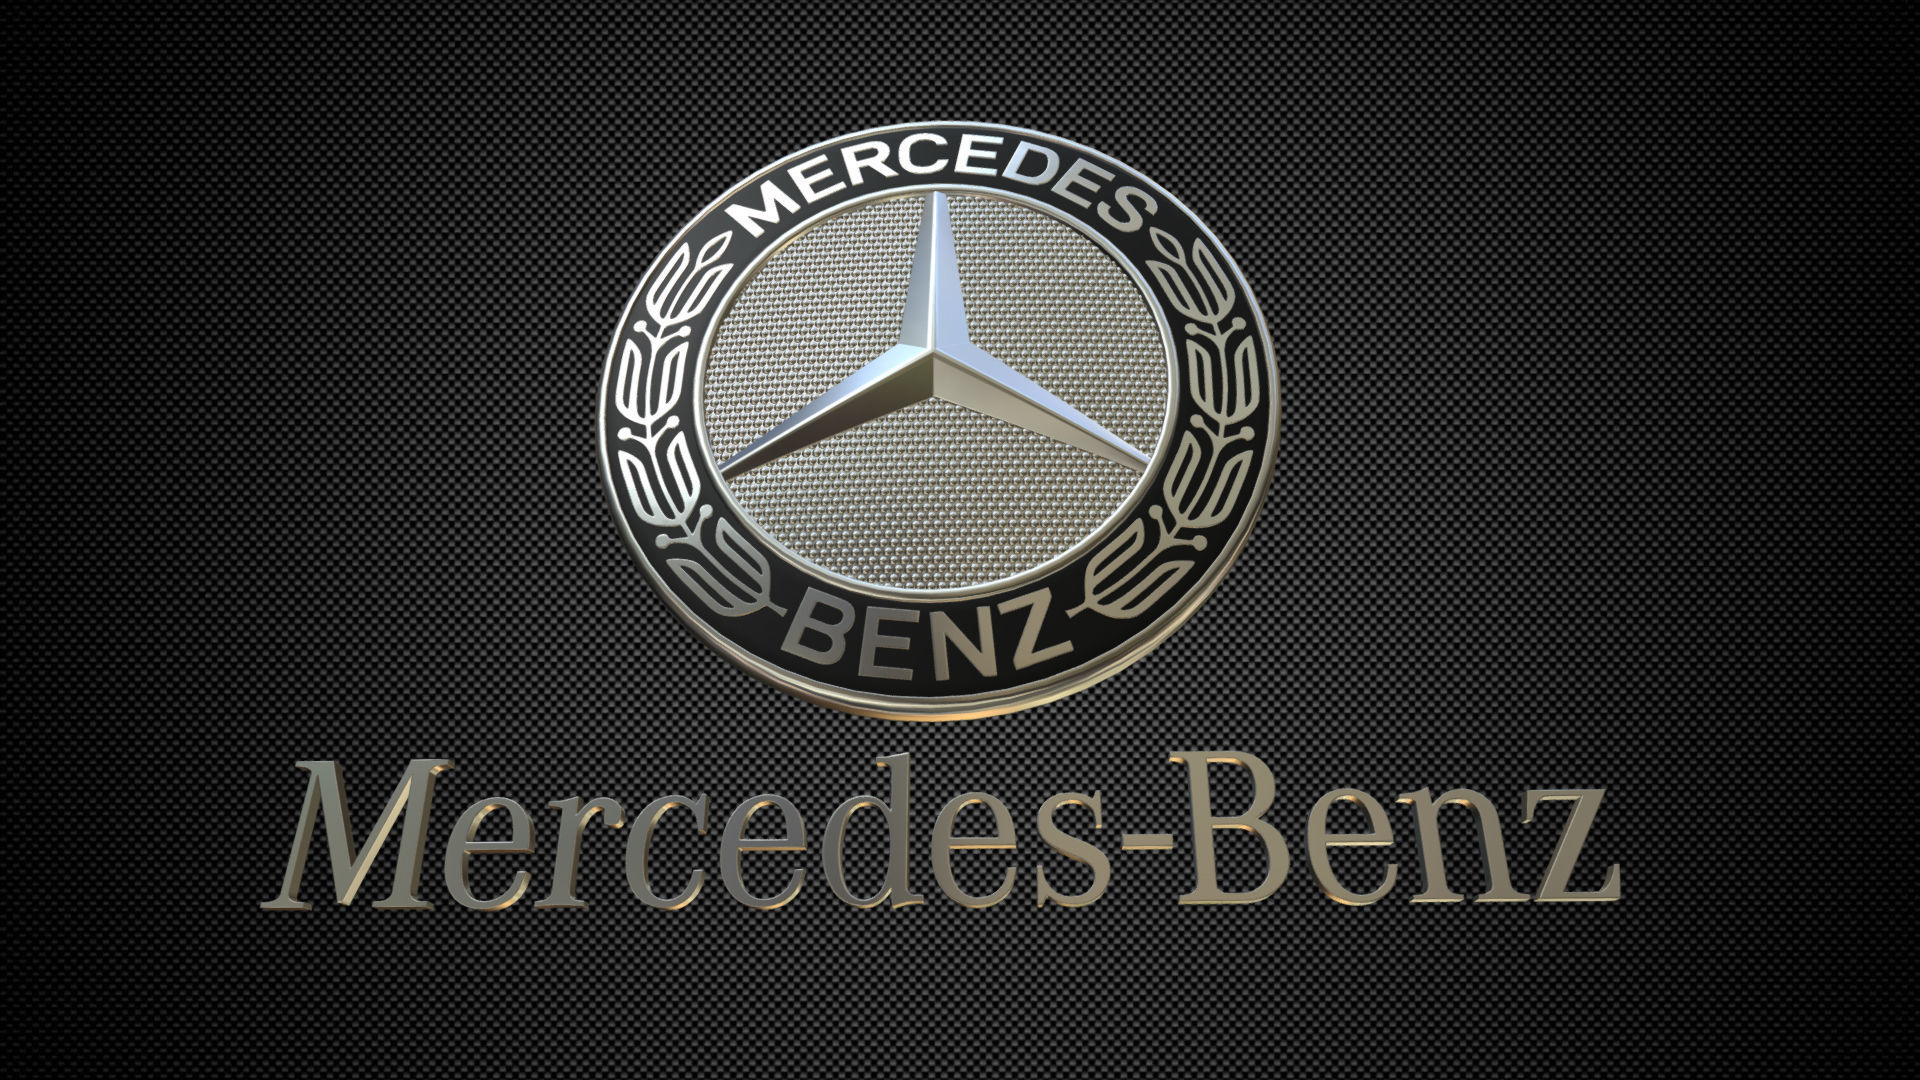 Mercedes benz logo wallpaper mobile 28 page 2 of 3 dzbc pages voltagebd Gallery